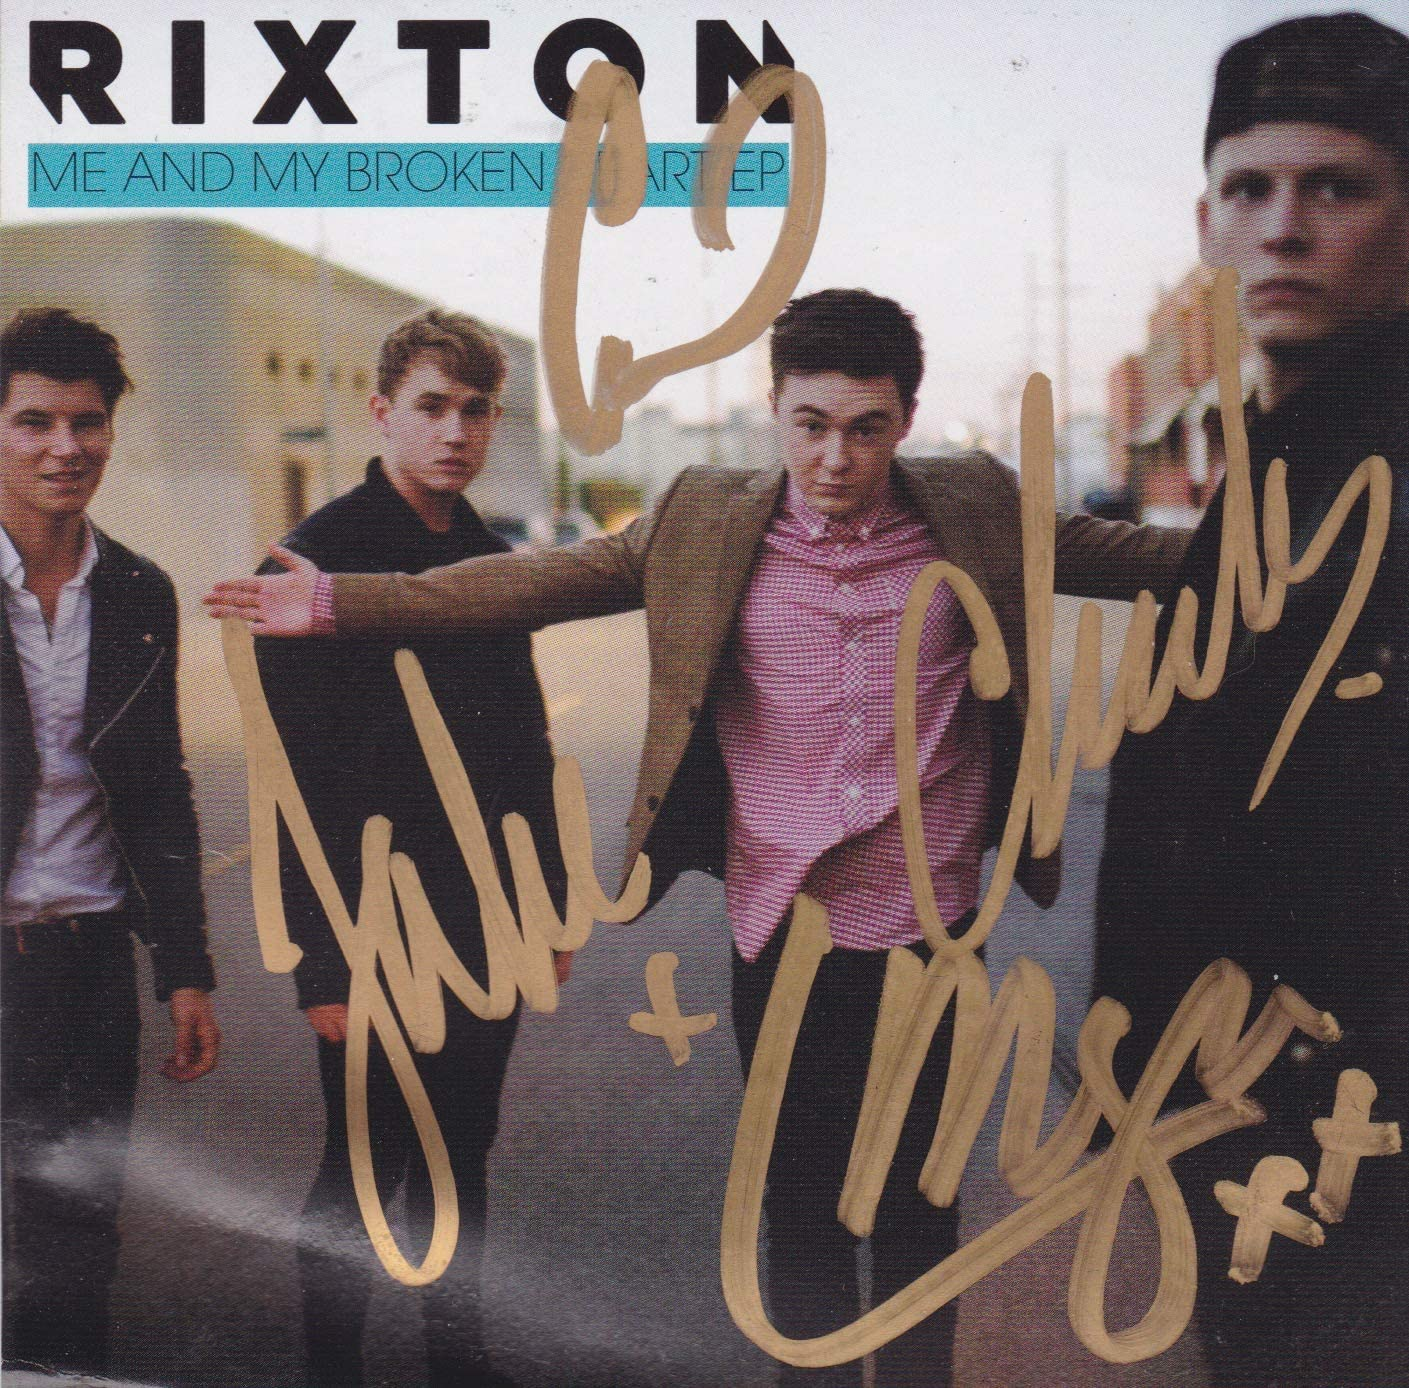 Long-awaited Max 79% OFF Rixton signed CD